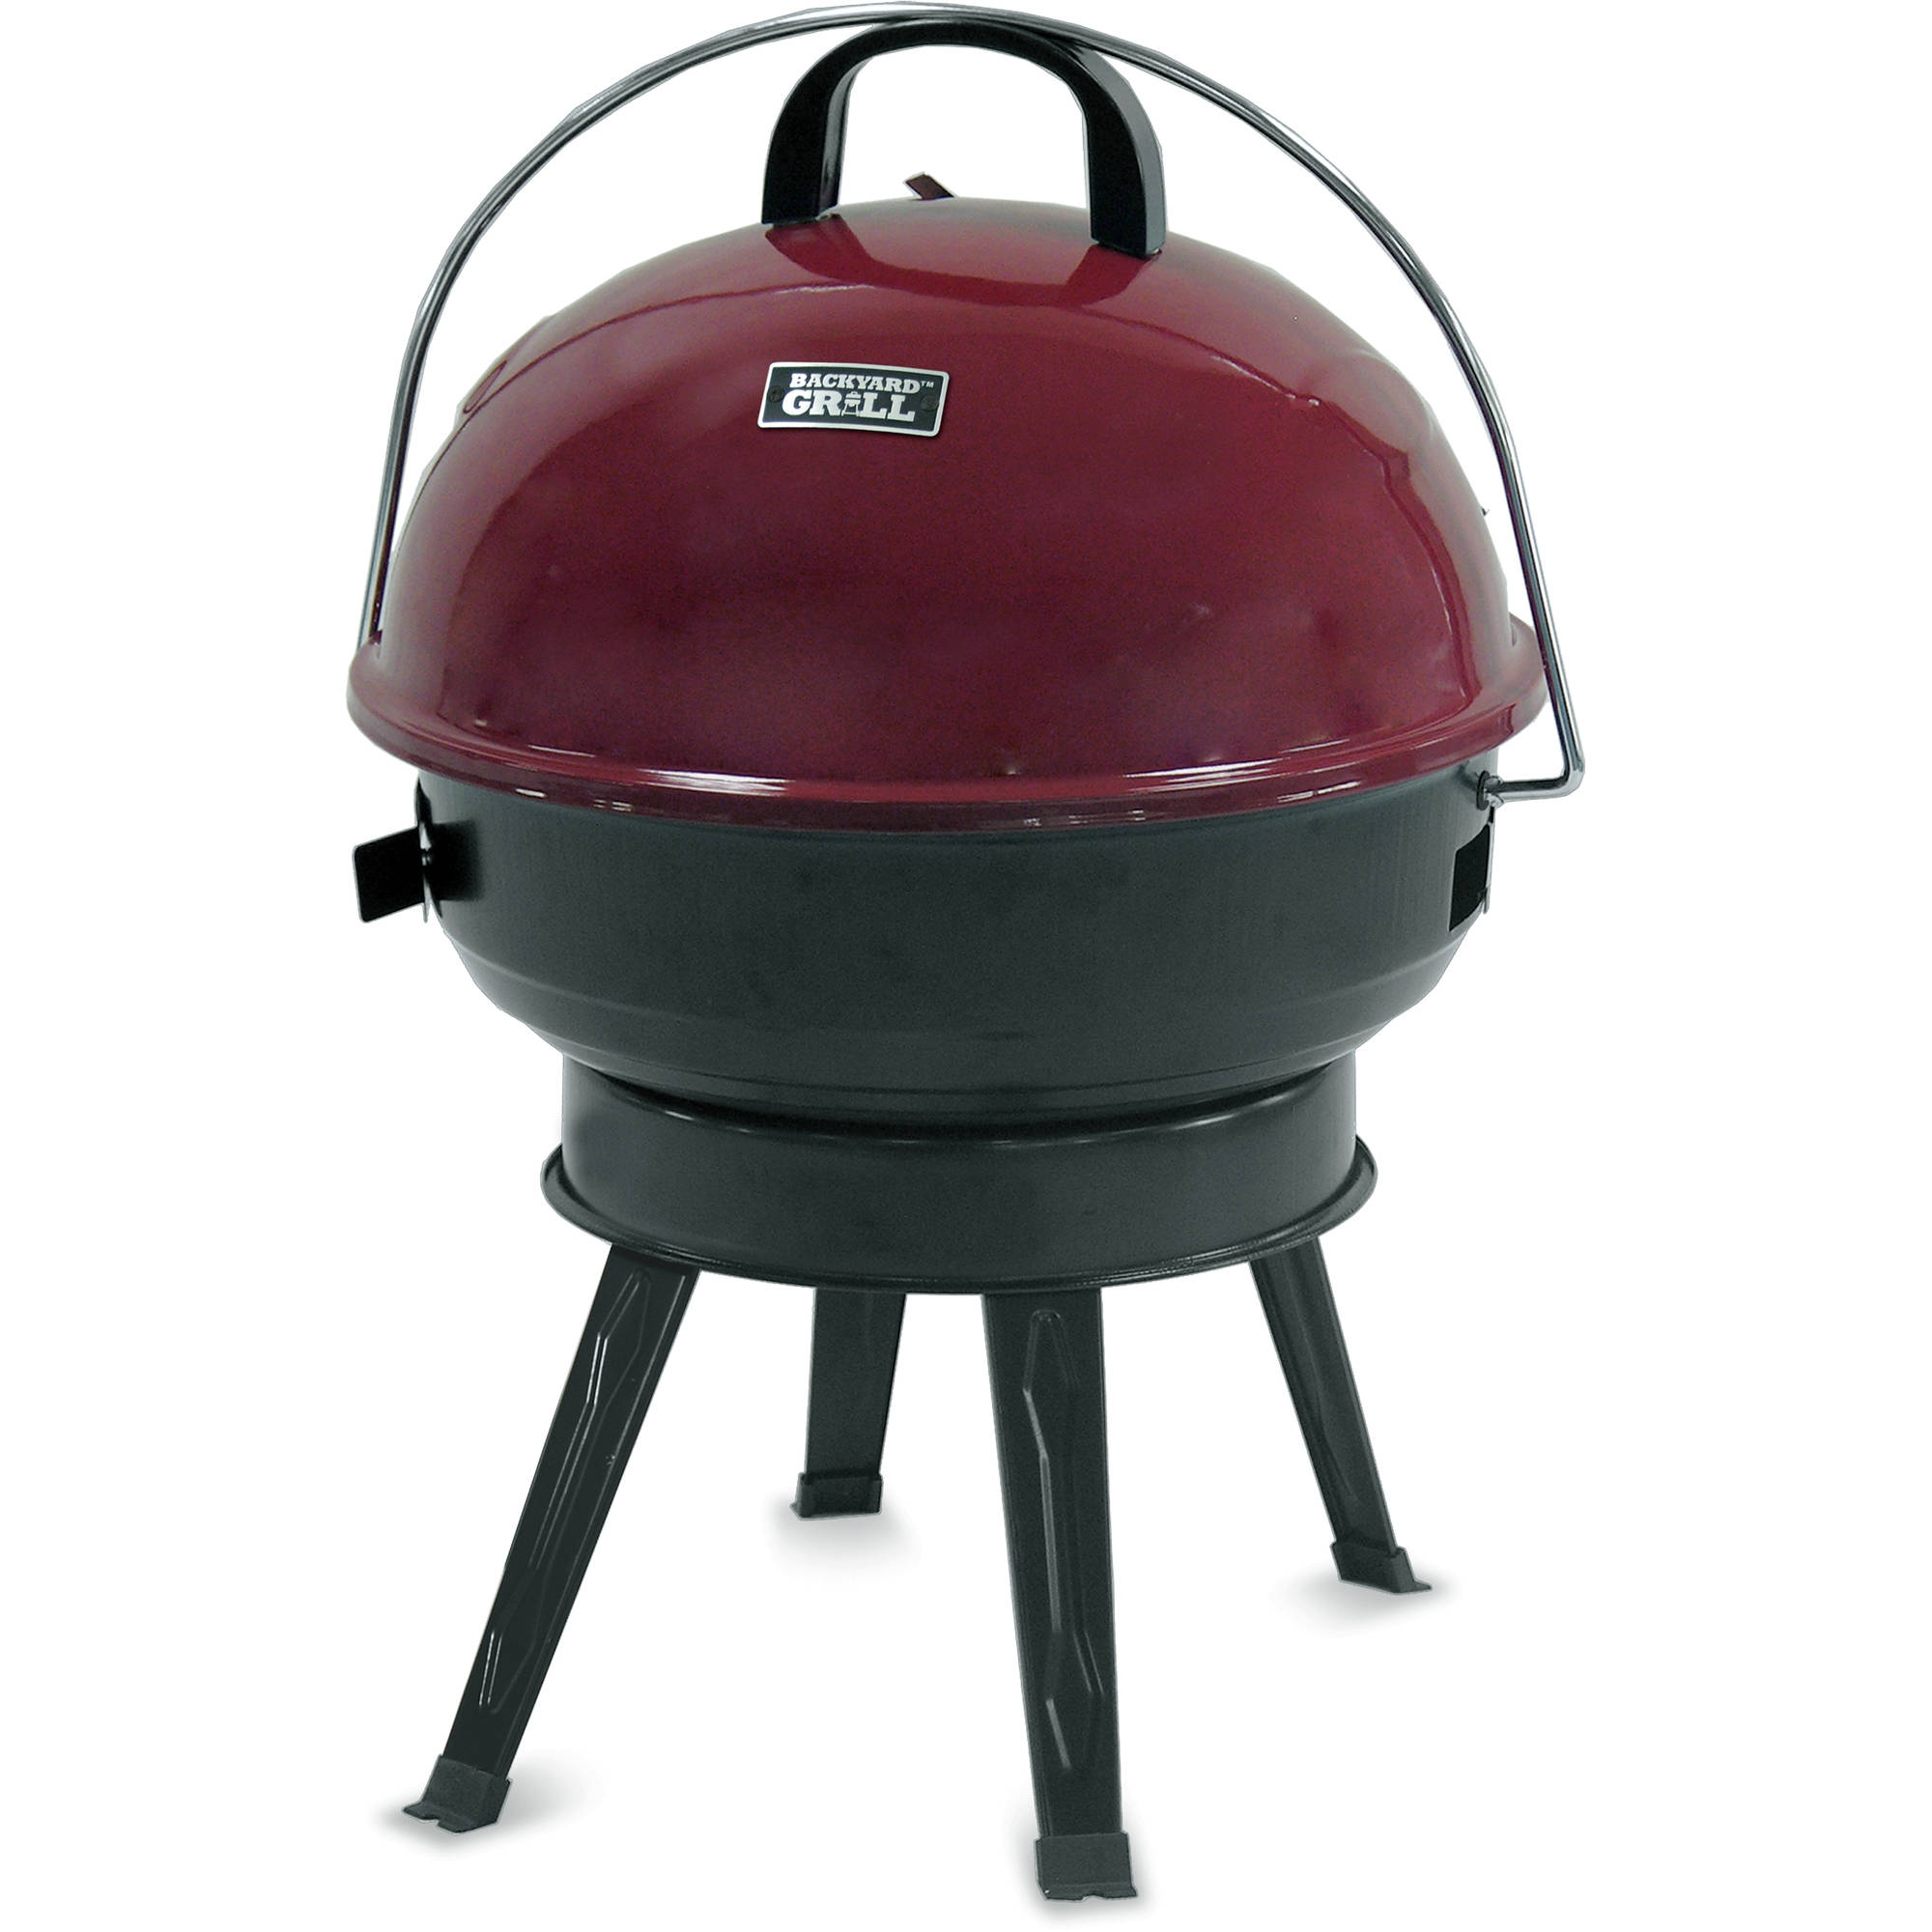 "Backyard Grill 14.5"" Round Portable Charcoal Grill"